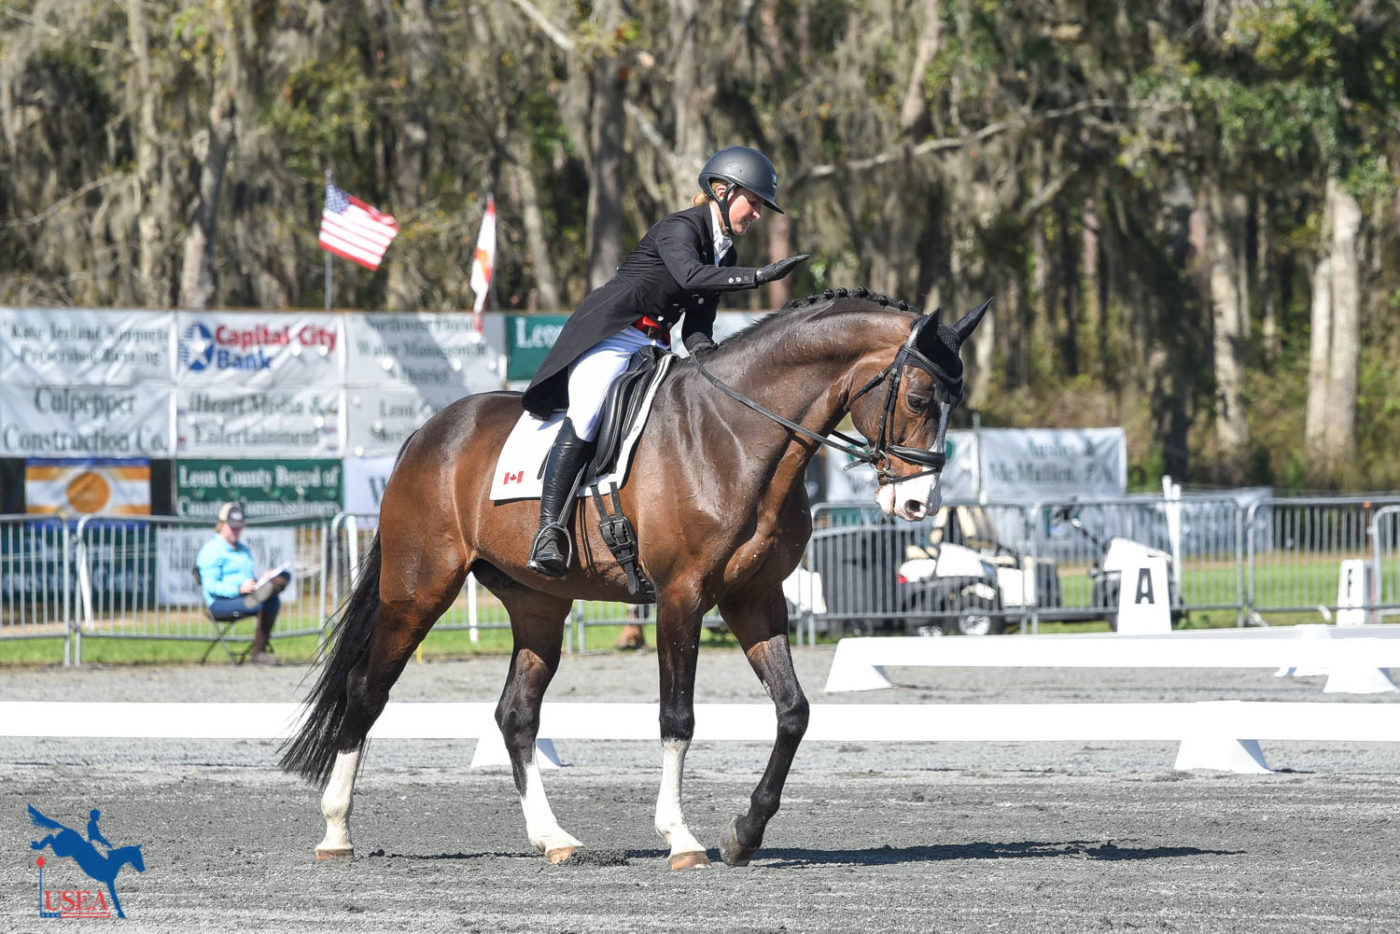 Jessica Phoenix pats Humble GS, who sits in 4th place after dressage. USEA/Kate Lokey photo.